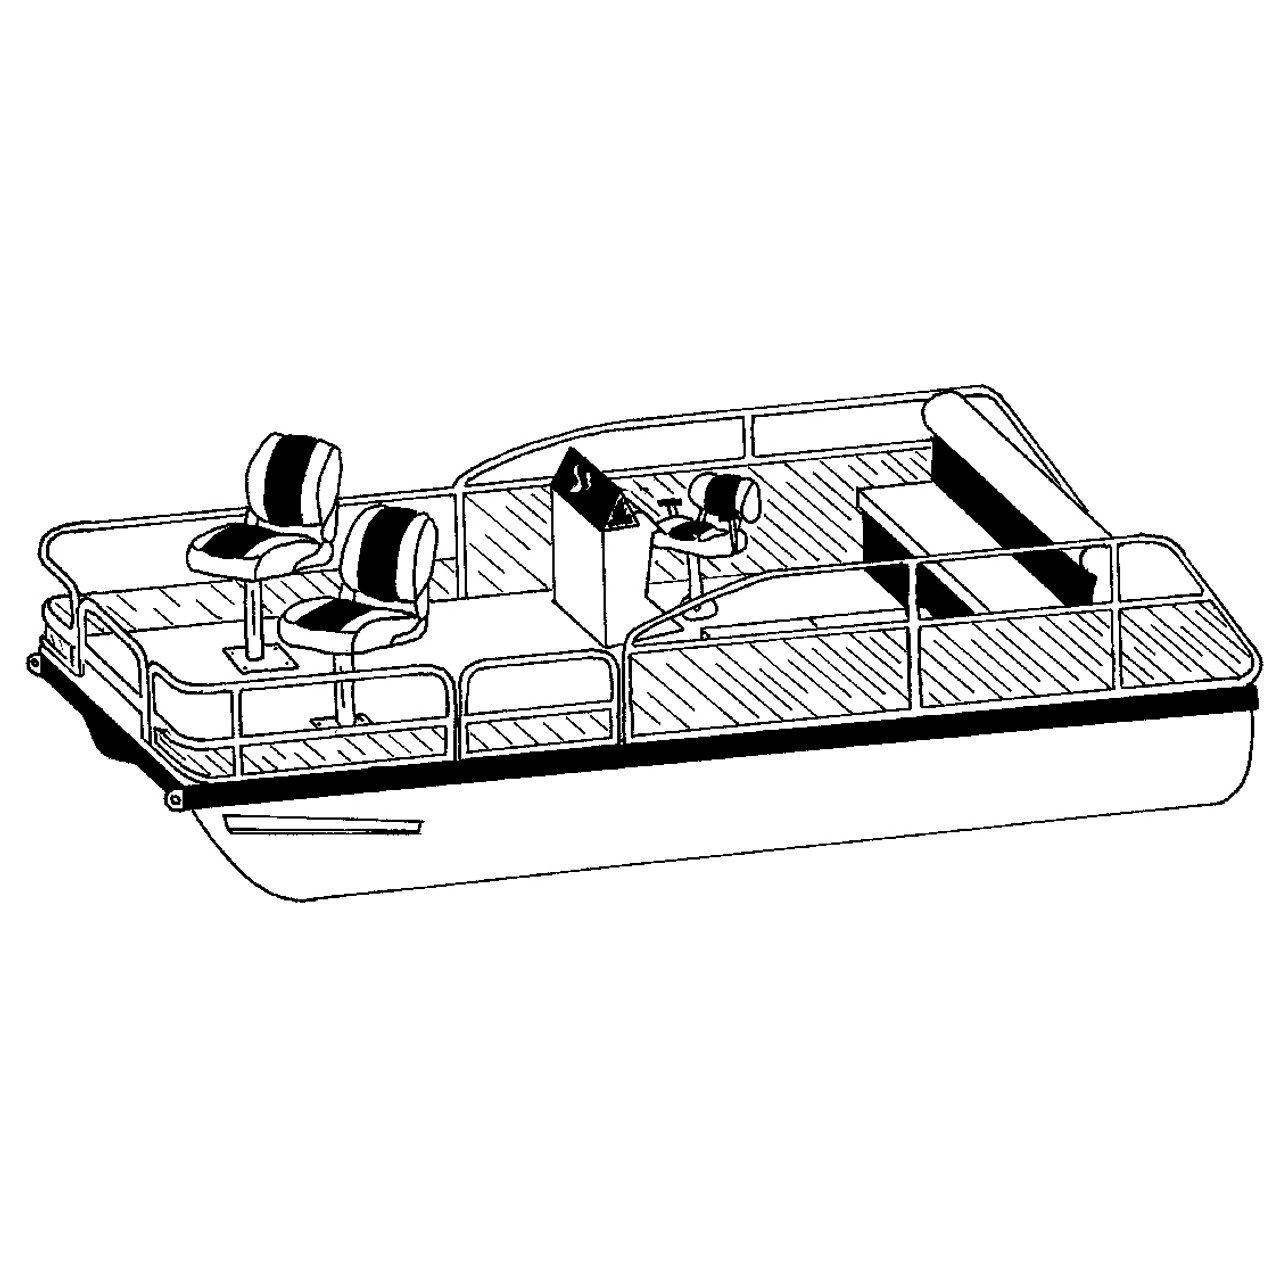 cover fits pontoon with low rails or fishing chairs at aft end of deck [ 1280 x 1280 Pixel ]